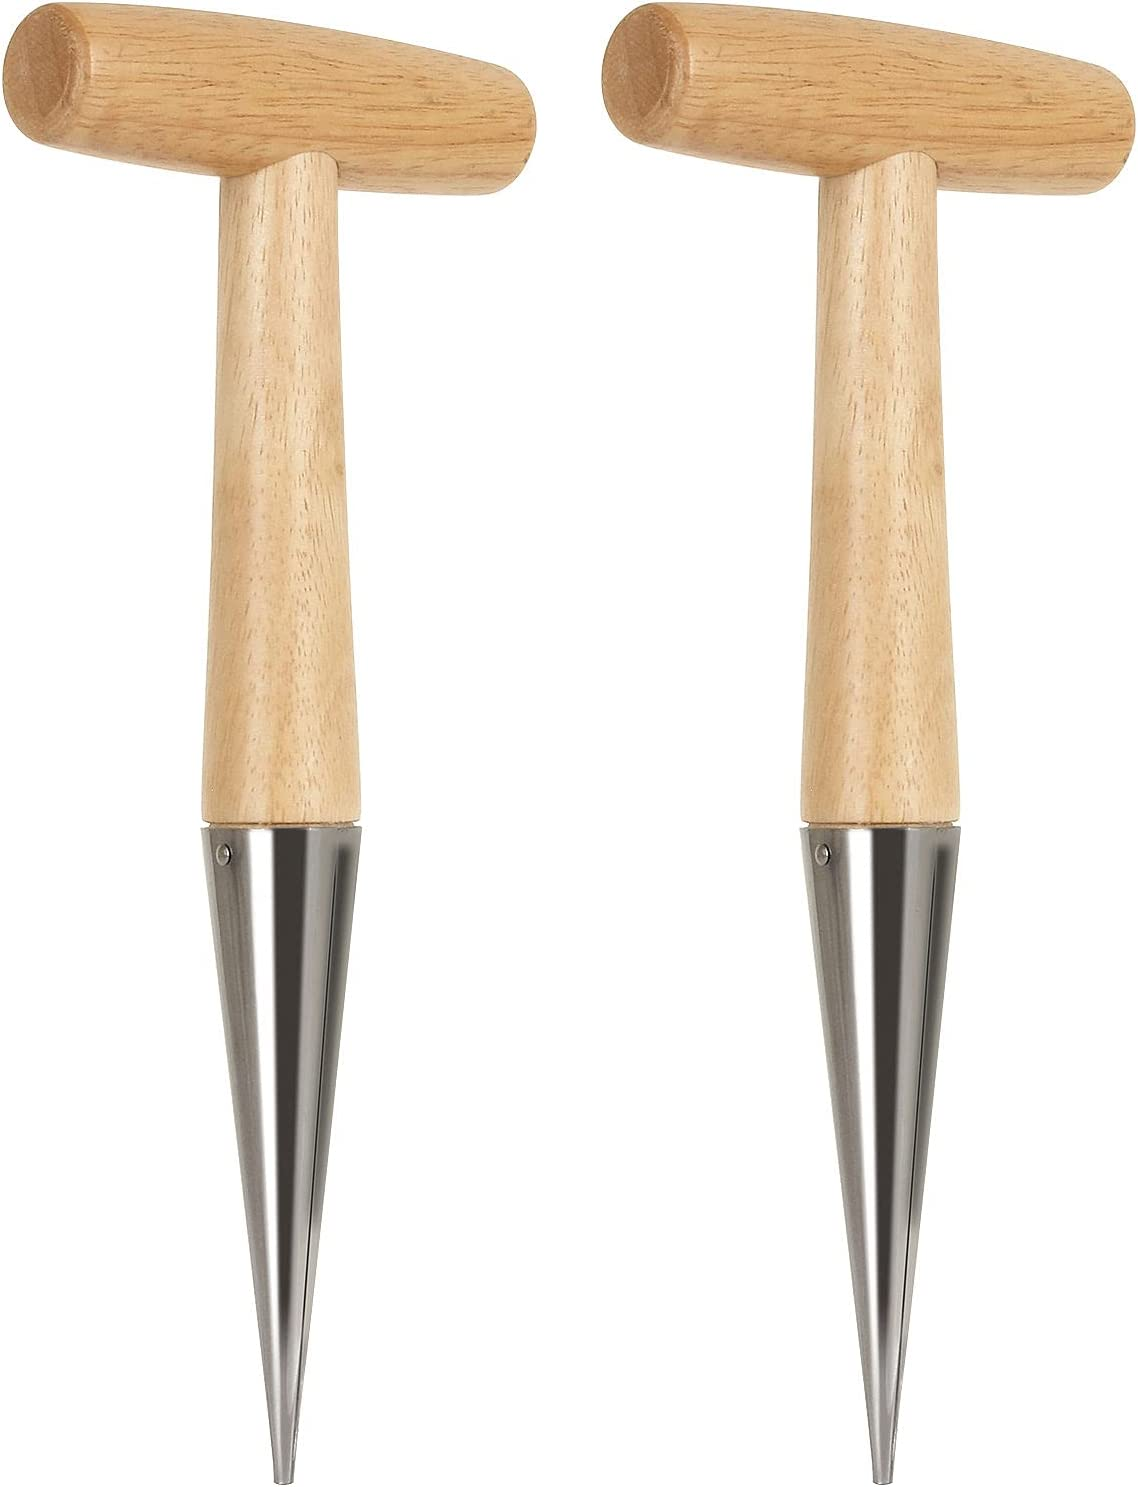 ZOEYES 2 PCS 11 Inch Stainless Steel Hand Dibber Garden Tools with Wooden Handle, Dibbler Bulb Planter, Wooden Sow Dibbers for Sowing Seeds, Transplanting Plants, Planting Bulbs, Digging, Gardening